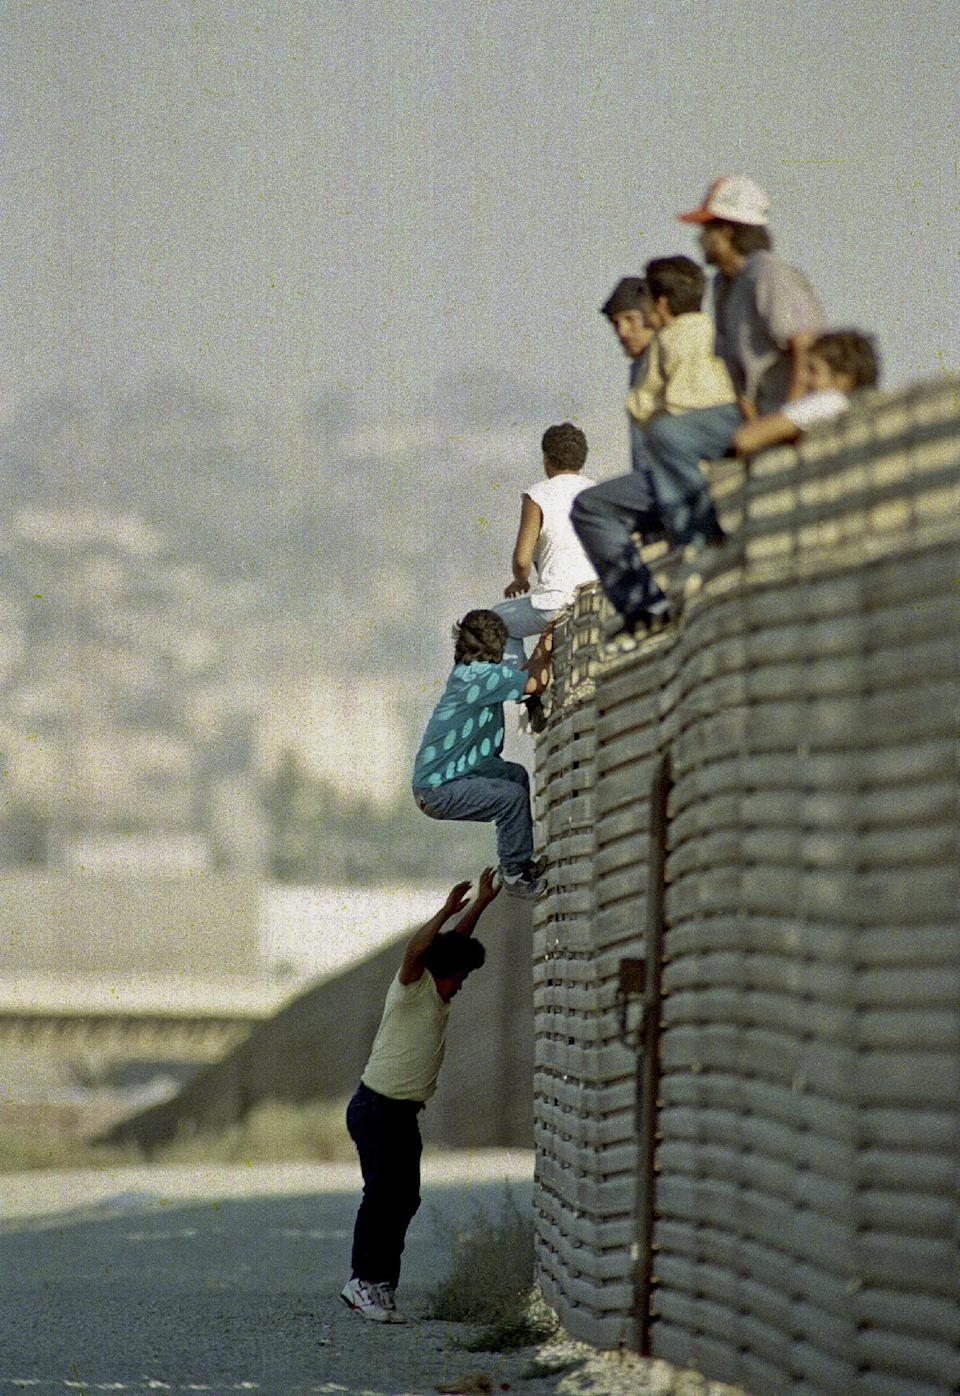 FILE - In this Oct. 14 1991 file photo, a group of illegal Mexican immigrants jump from a border fence to enter the United States, near Tijuana, Mexico. With new fencing and tougher enforcement the 1,954-mile border with Mexico is more difficult to breach than ever. (AP Photo/Lenny Ignelzi)